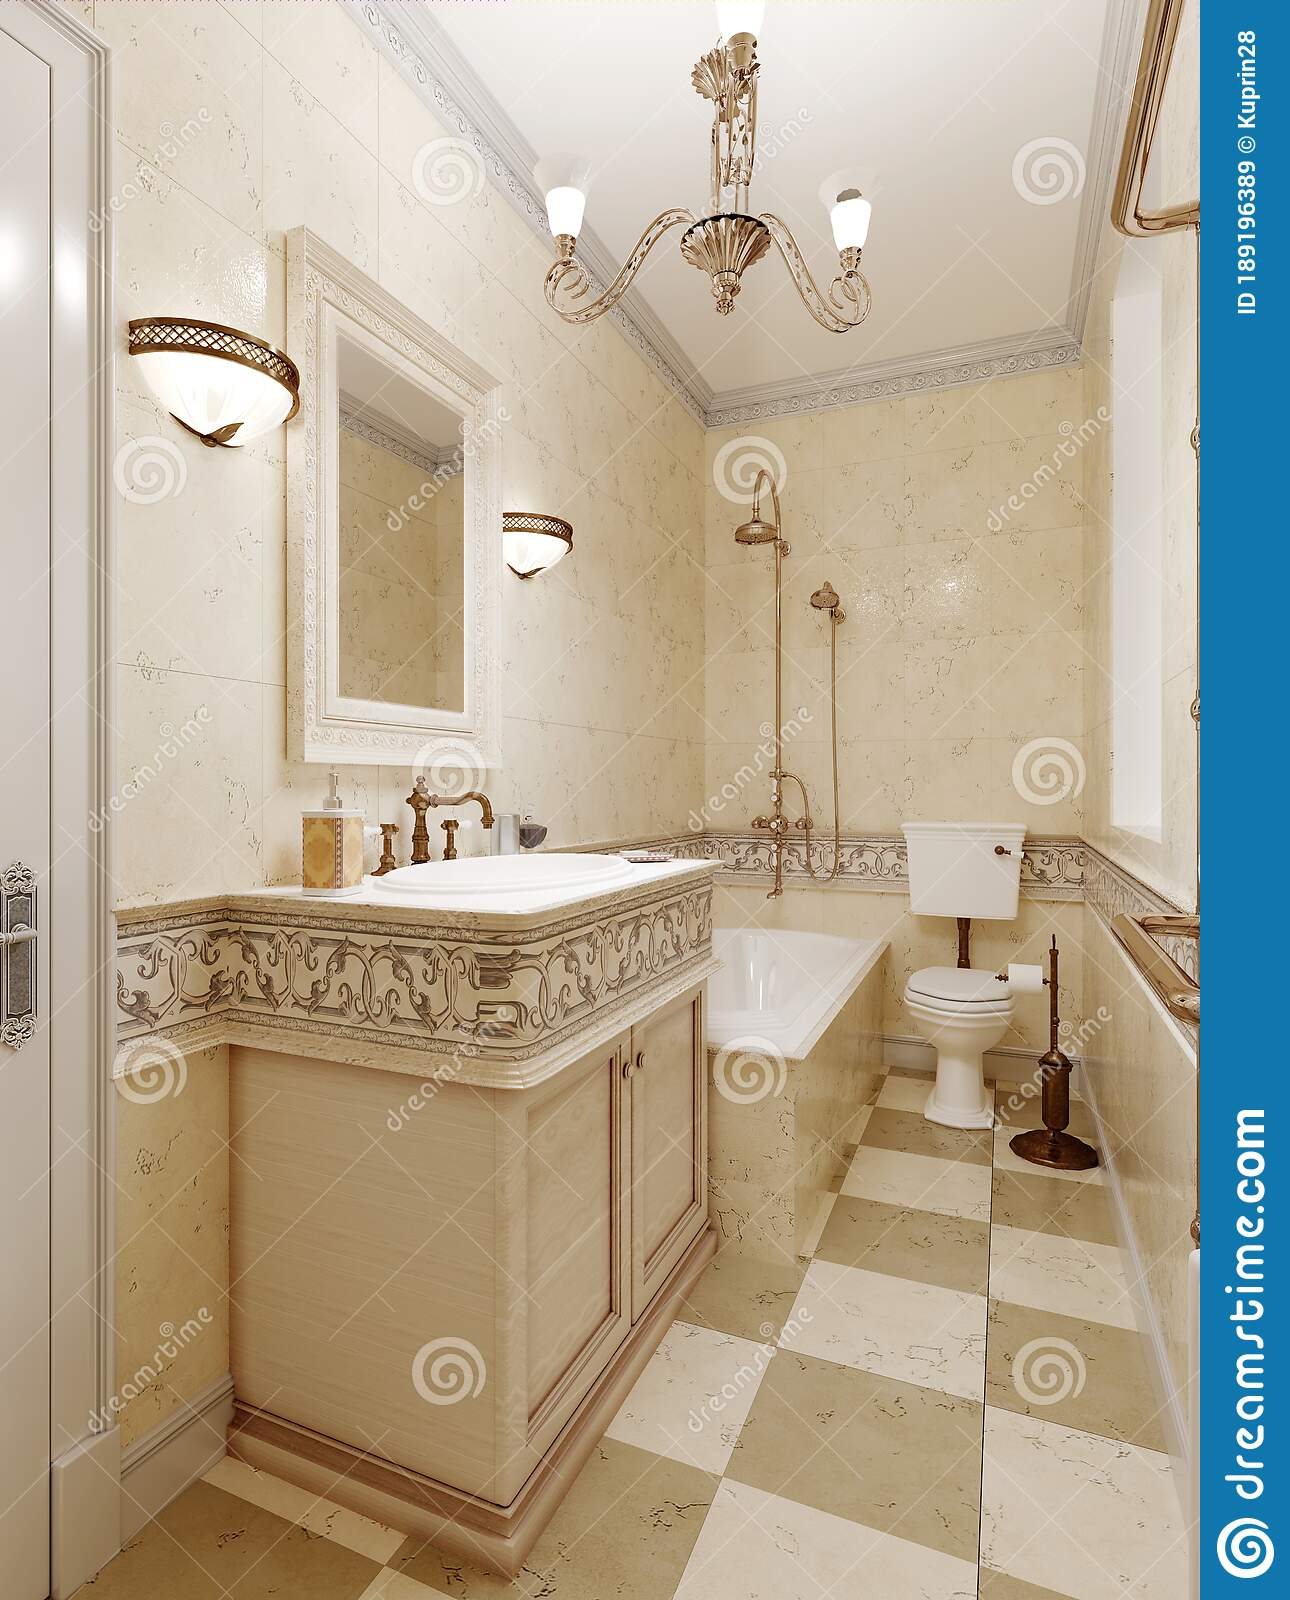 Bathroom In Art Deco Style Beige Tiles On The Walls With Ornament Bath Washbasin And Toilet Stock Illustration Illustration Of Realestate Mirror 189196389